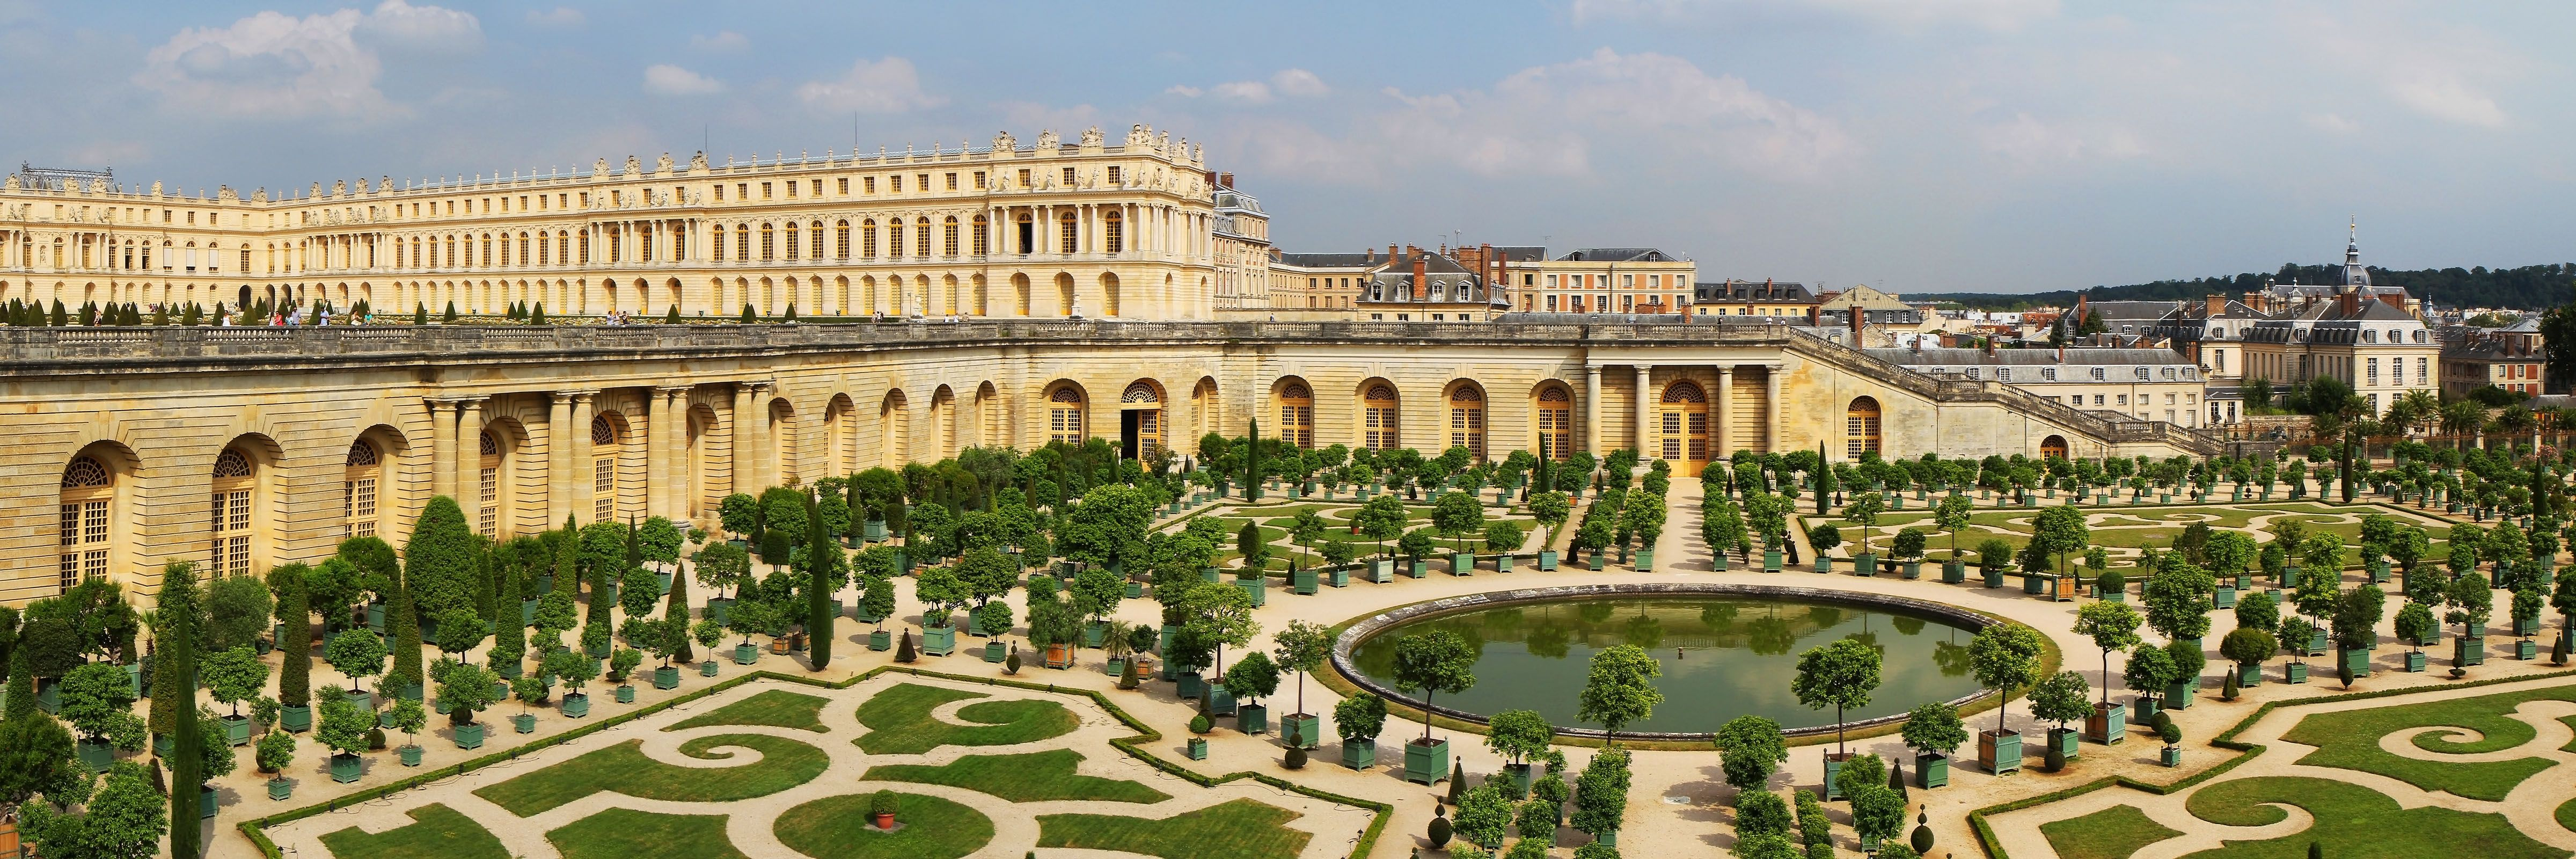 Visitors Can Now Live Like Marie Antoinette At The Palace Of Versailles